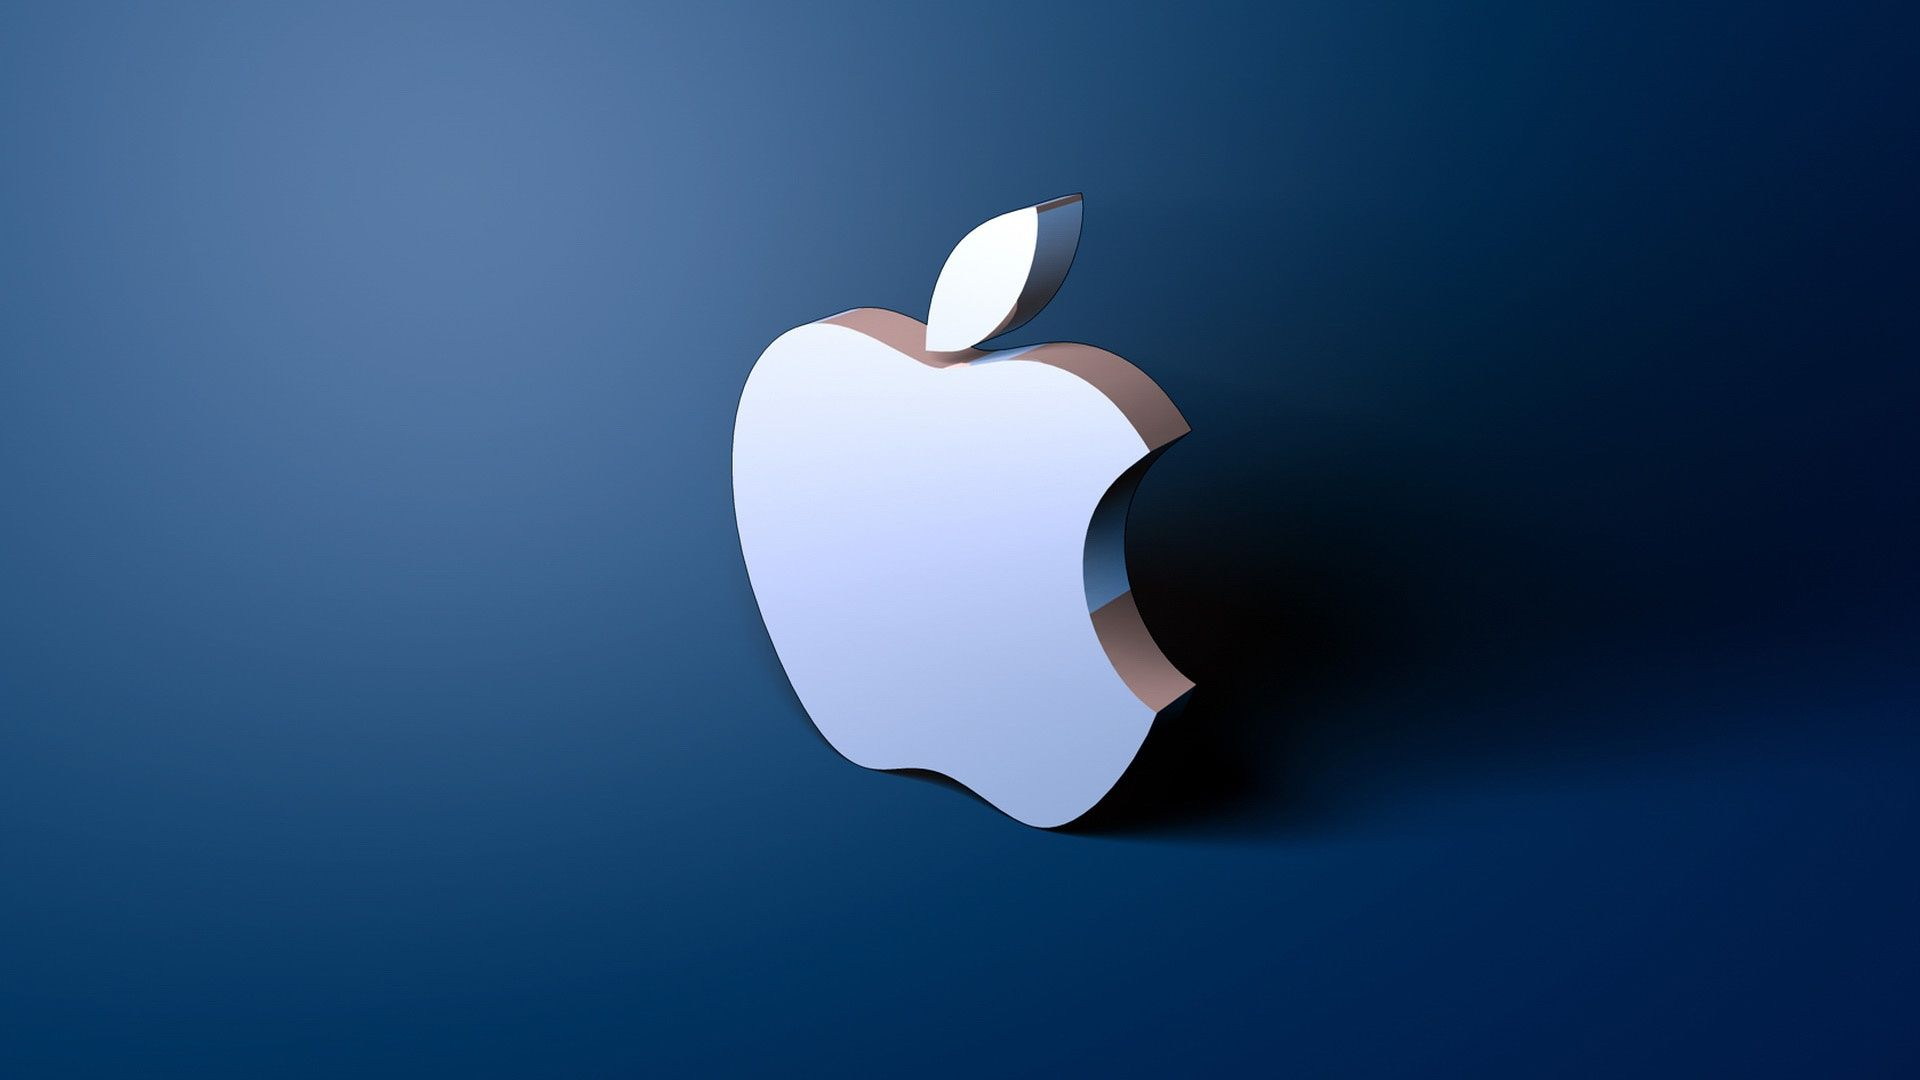 Fondos de pantalla full hd apple